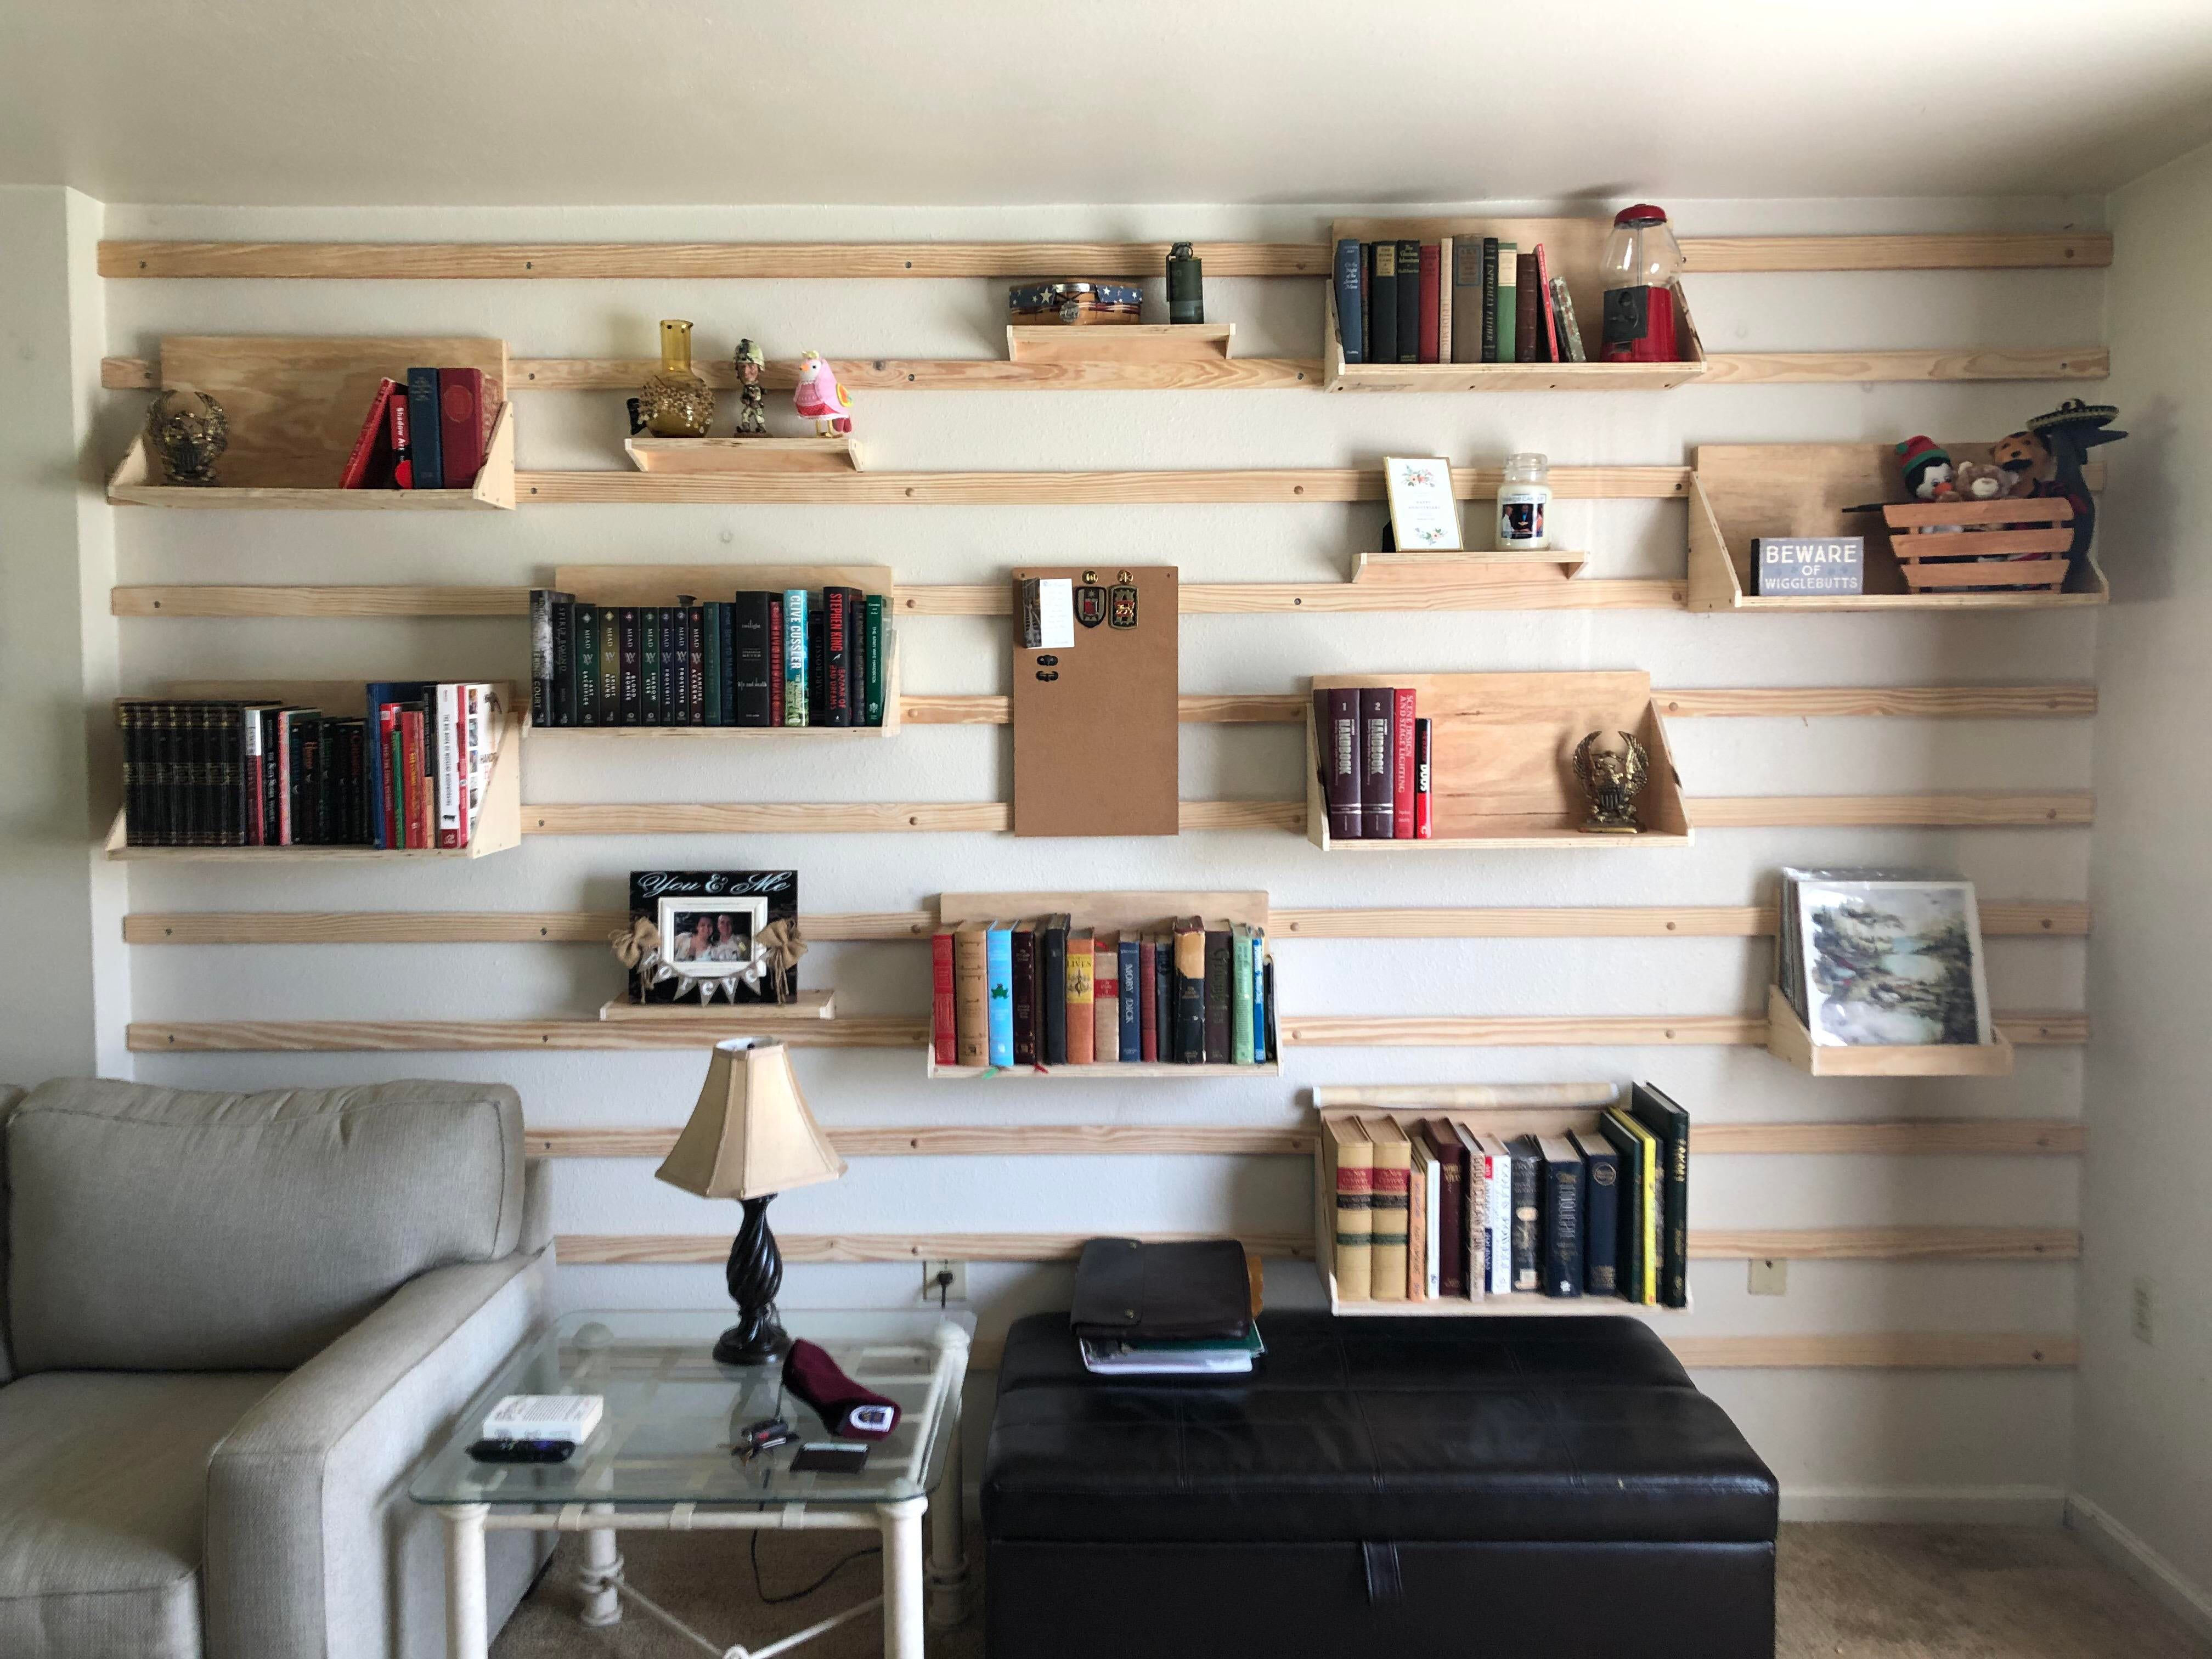 French Cleat Wall French Cleat Shelves Woodworking Plans Wood Projects